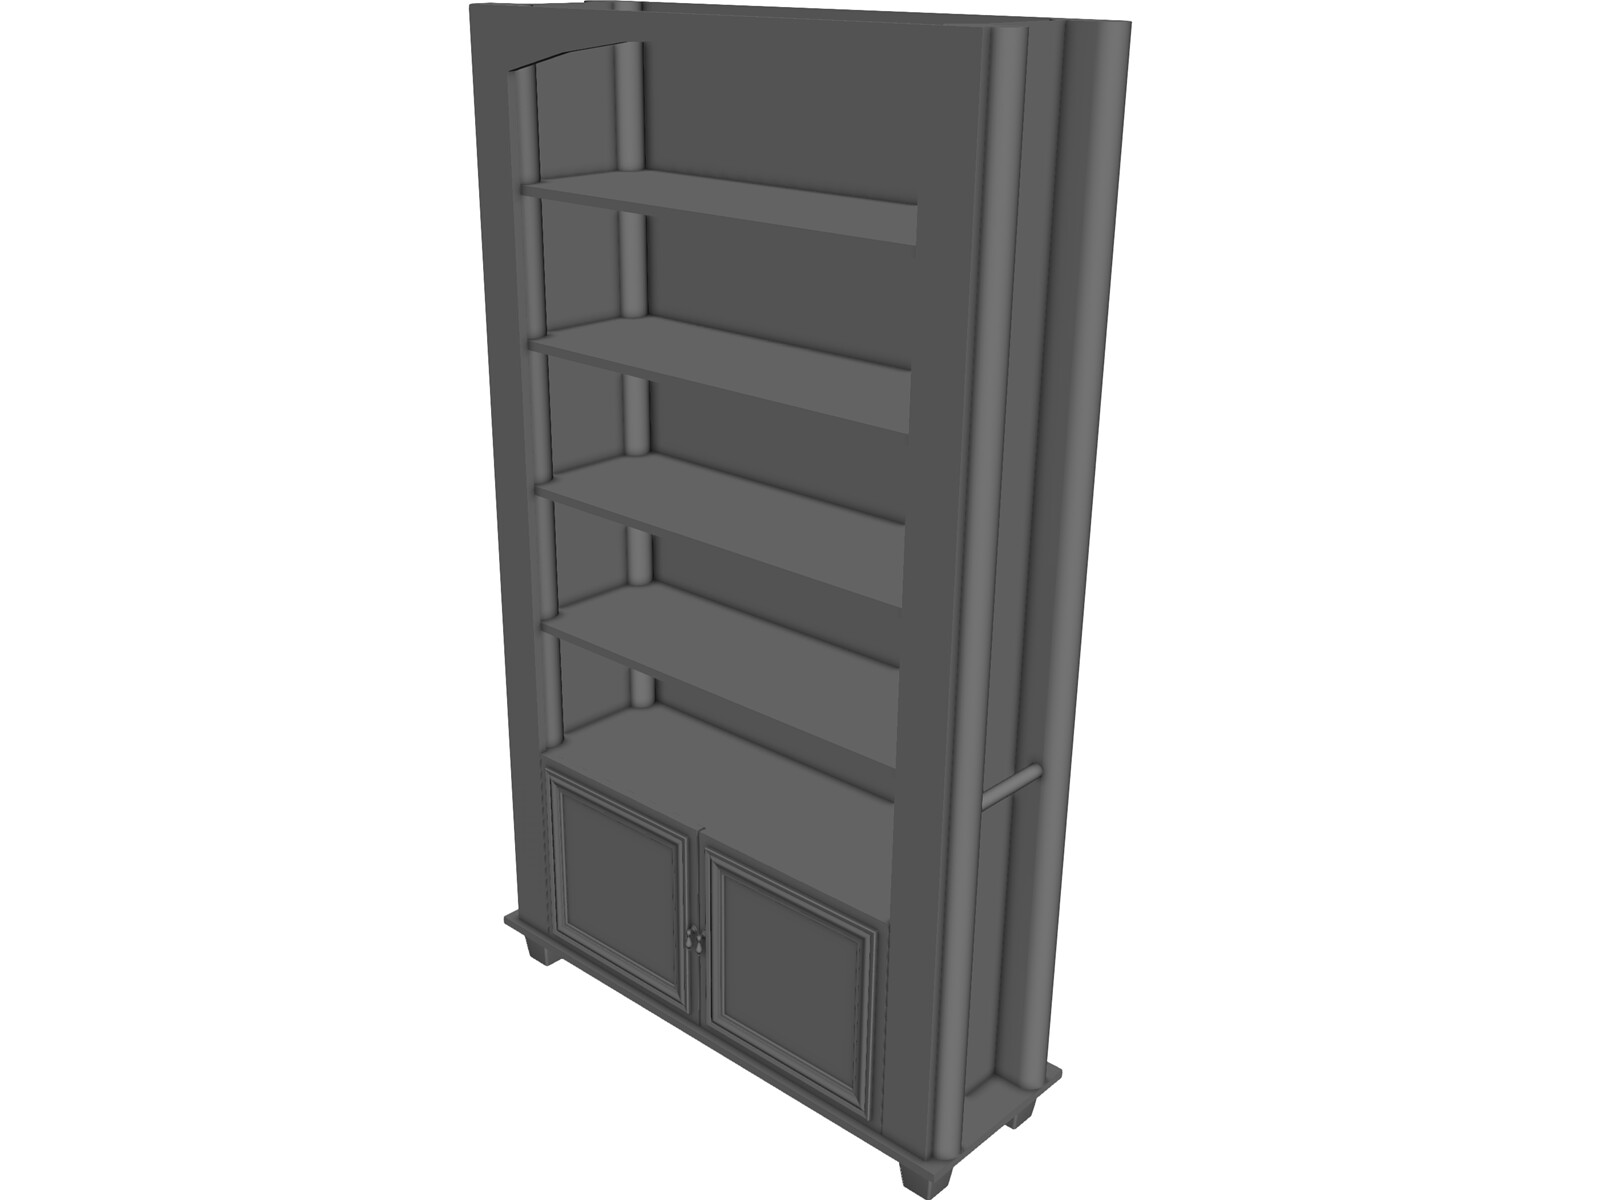 Oak Book Shelf 3D CAD Model